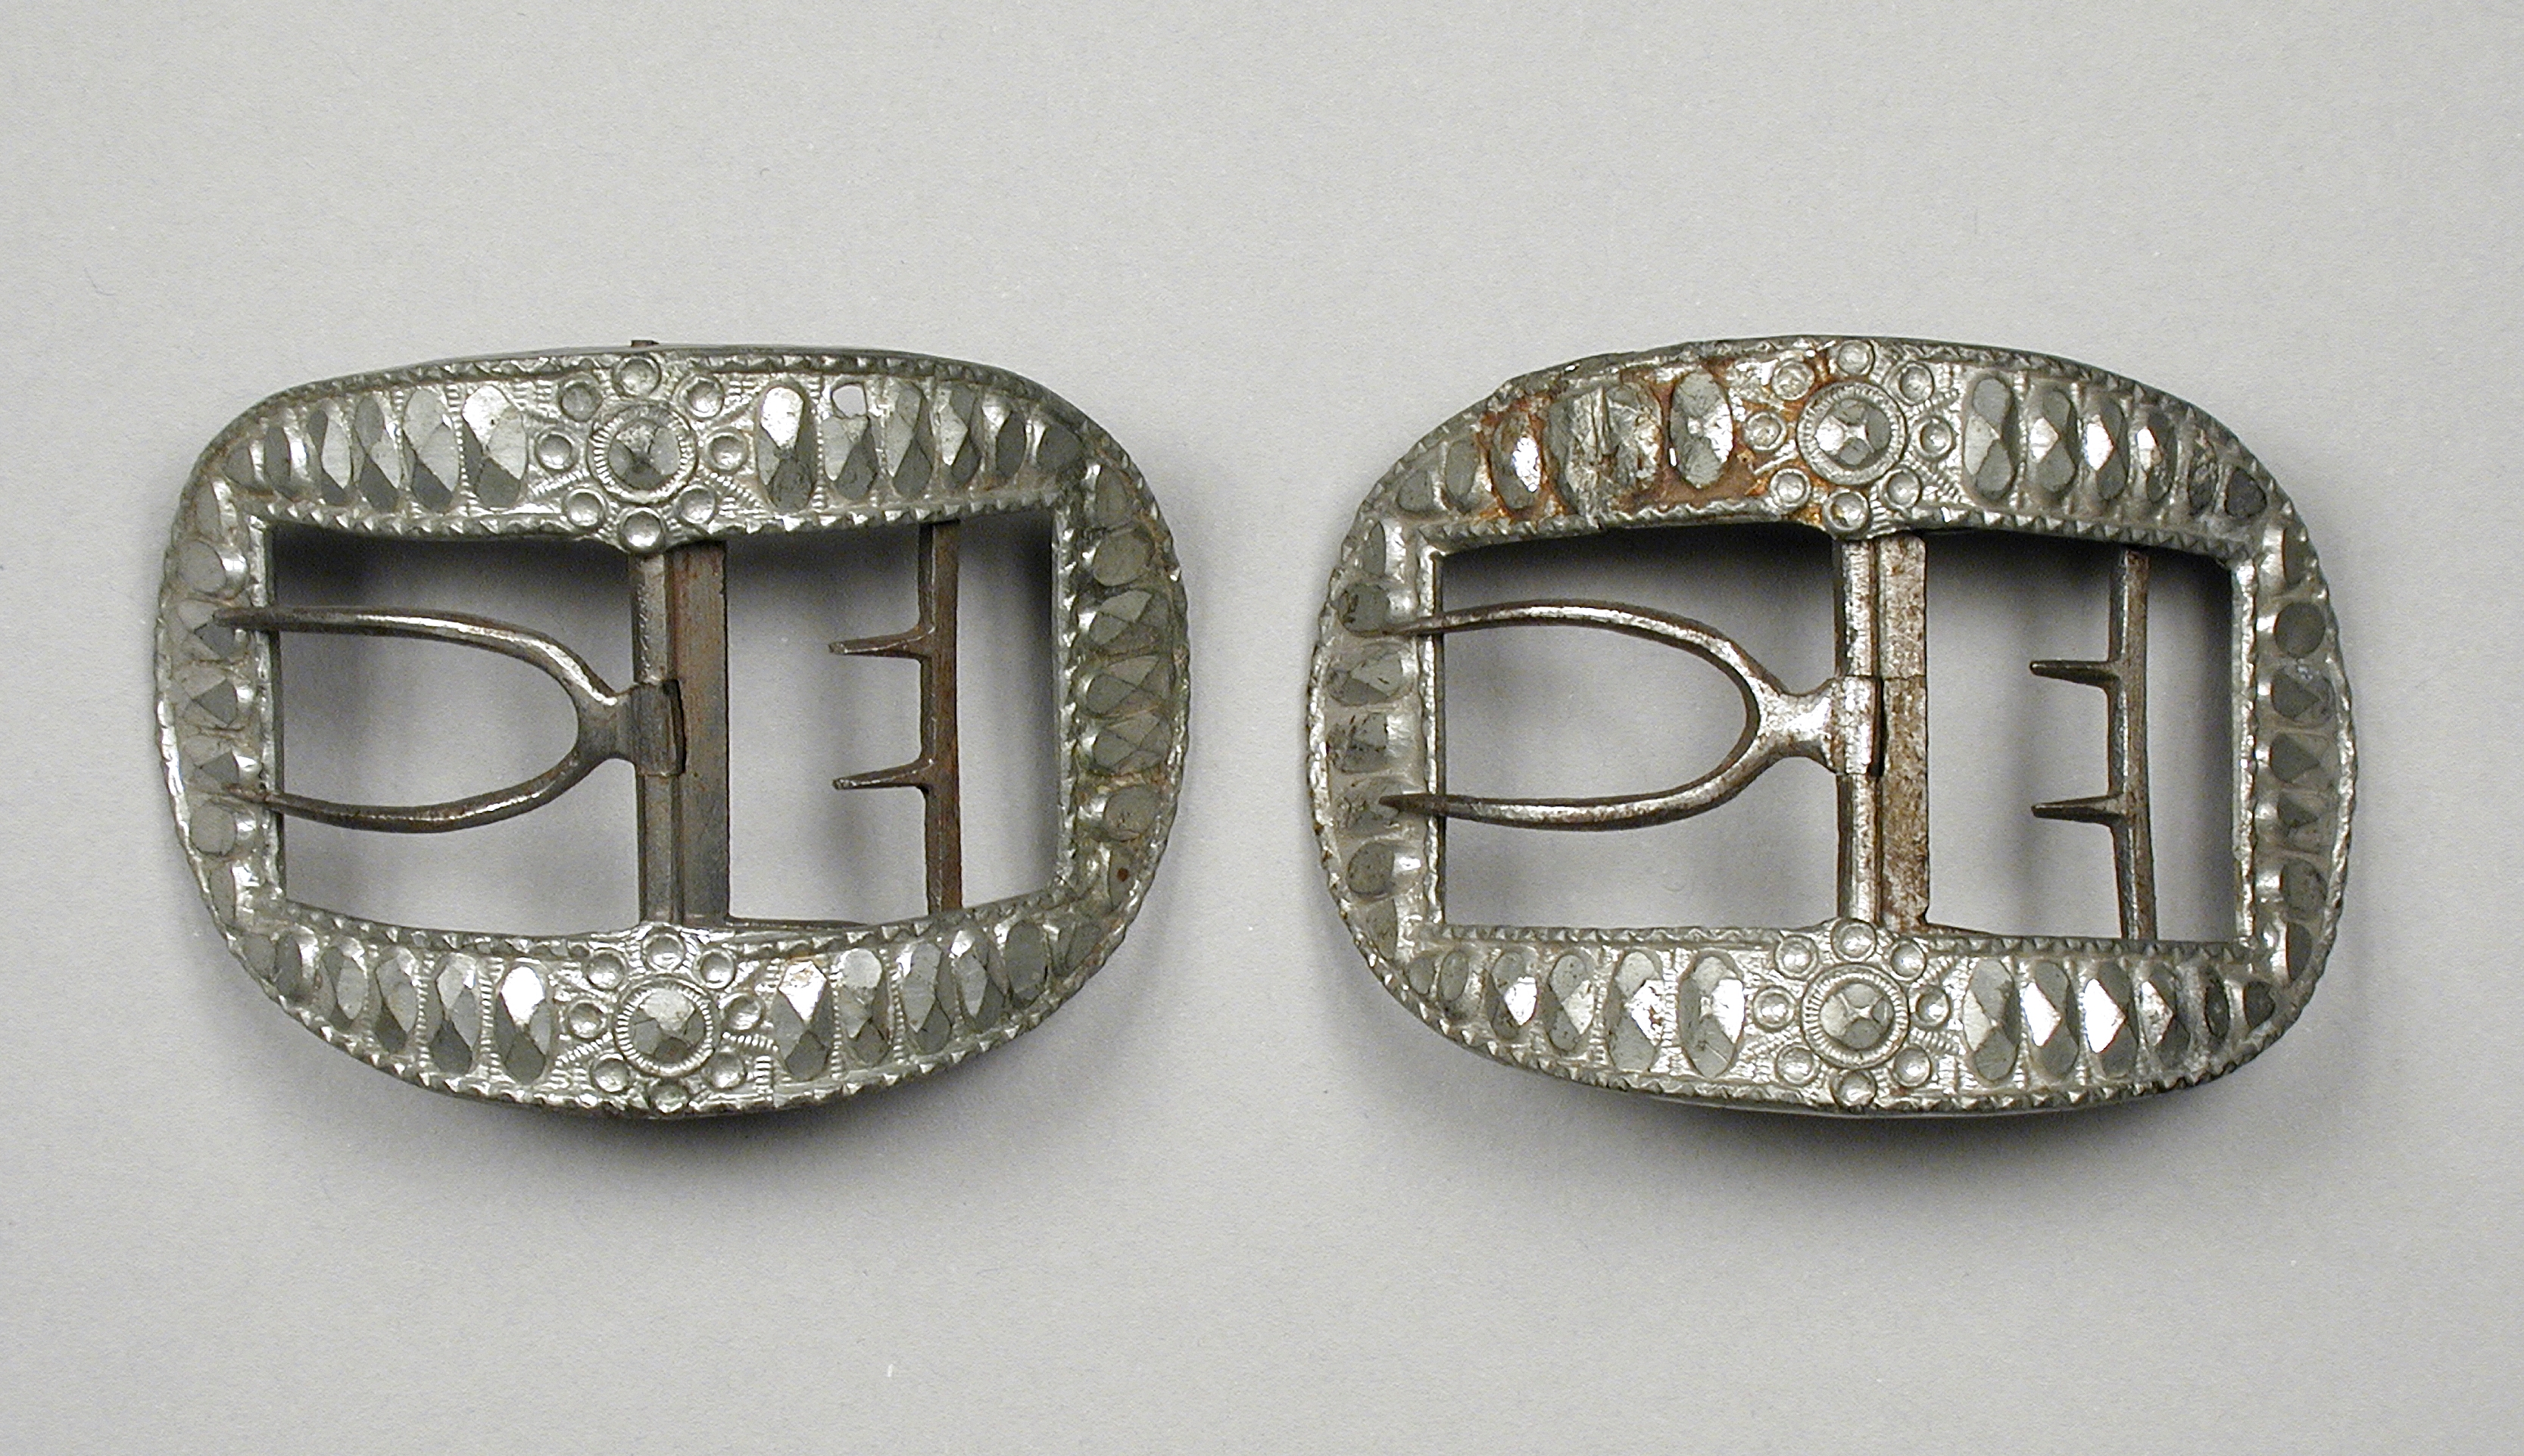 dating shoe buckles Dating buckles, dating old buckles, harness buckles, how to date old buckles, roman buckles, what is the dating policy for buckle, wwwreenactorrul/arh/pdf.